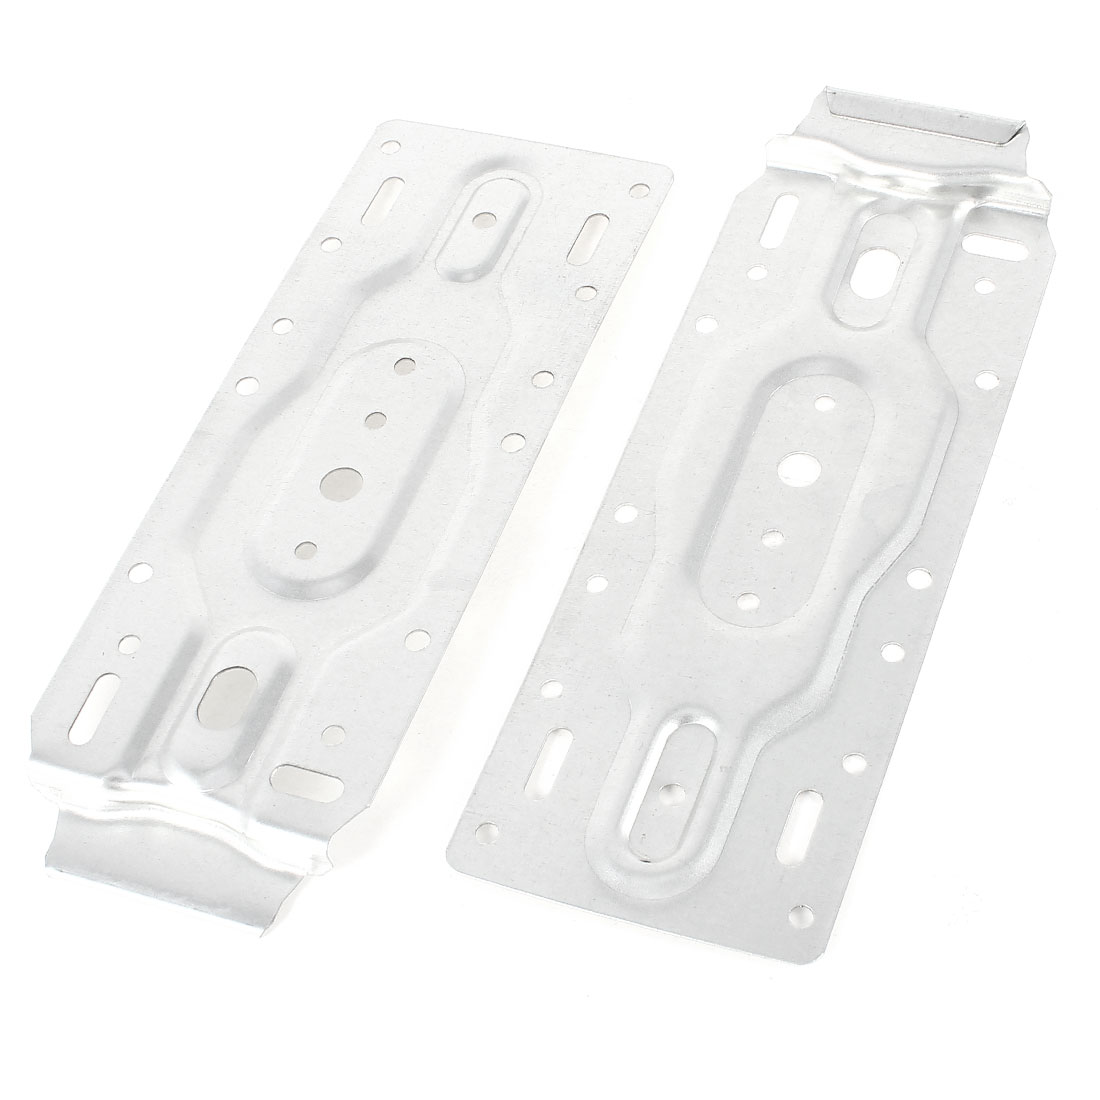 "2 Pcs Rectangle Metal Hollow Out Hanging Board 8"" x 3"" for Air Conditioner"